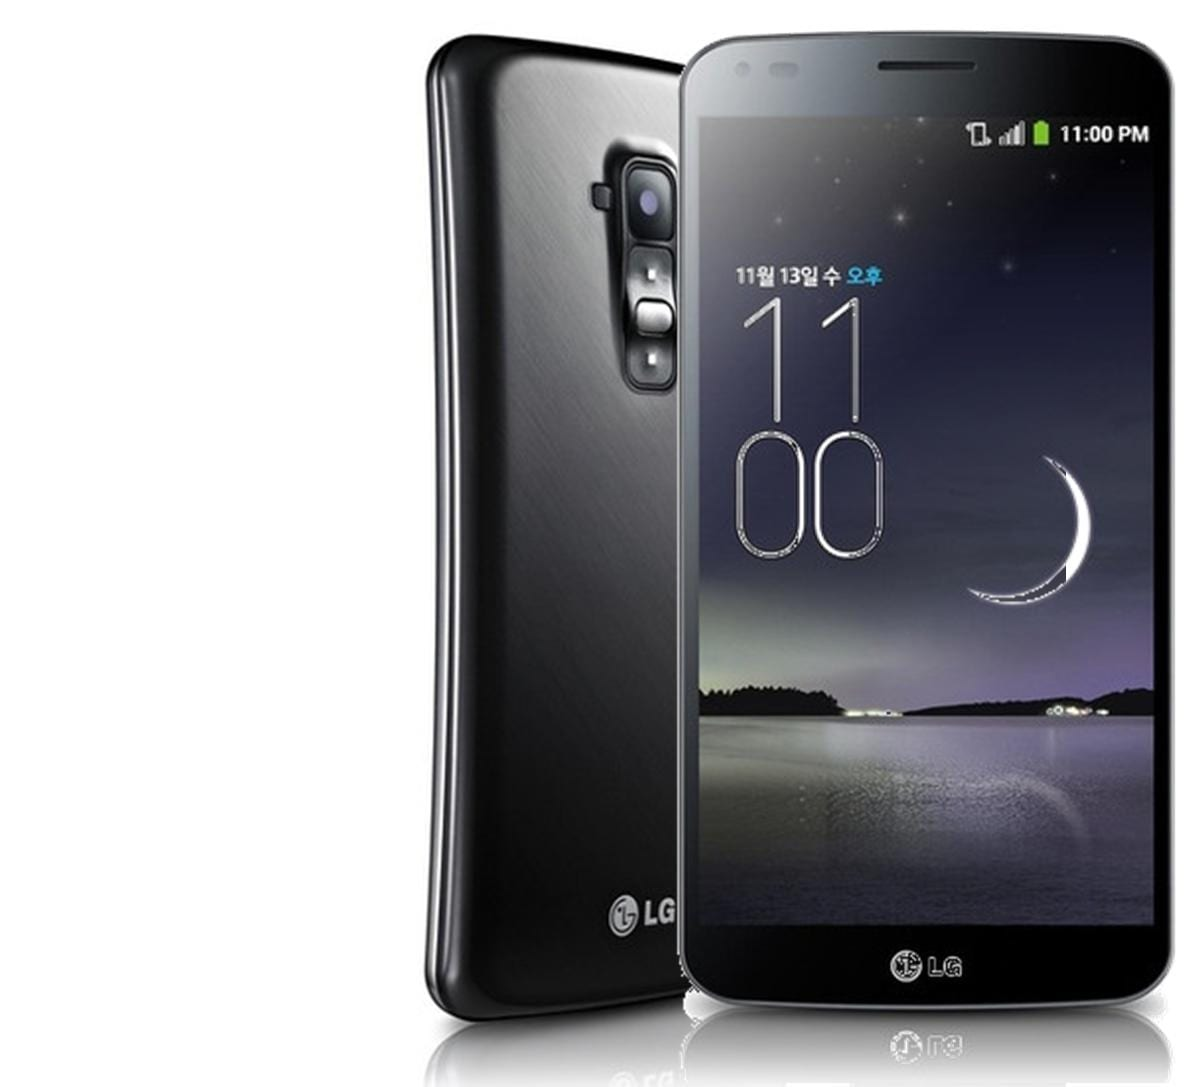 celular-lg-g-flex-d958-32gb-13mp-quad-core-jelly-bean-wifi-12559-MLM20062333573_032014-F